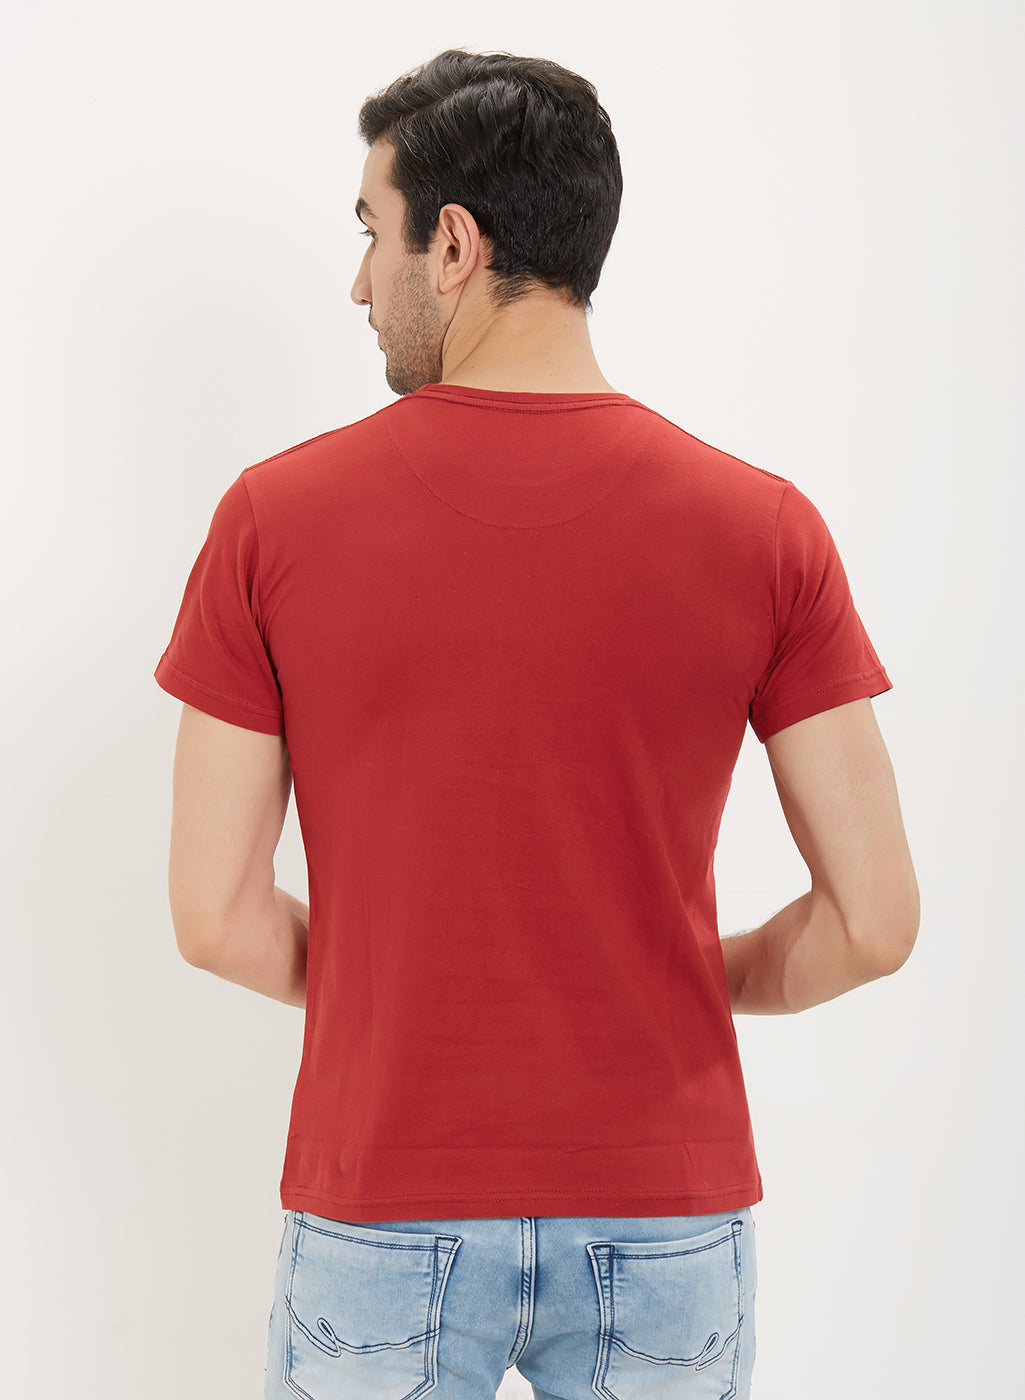 Rock Hooper Men's Half Sleeve Cotton Red Round Neck T-Shirt